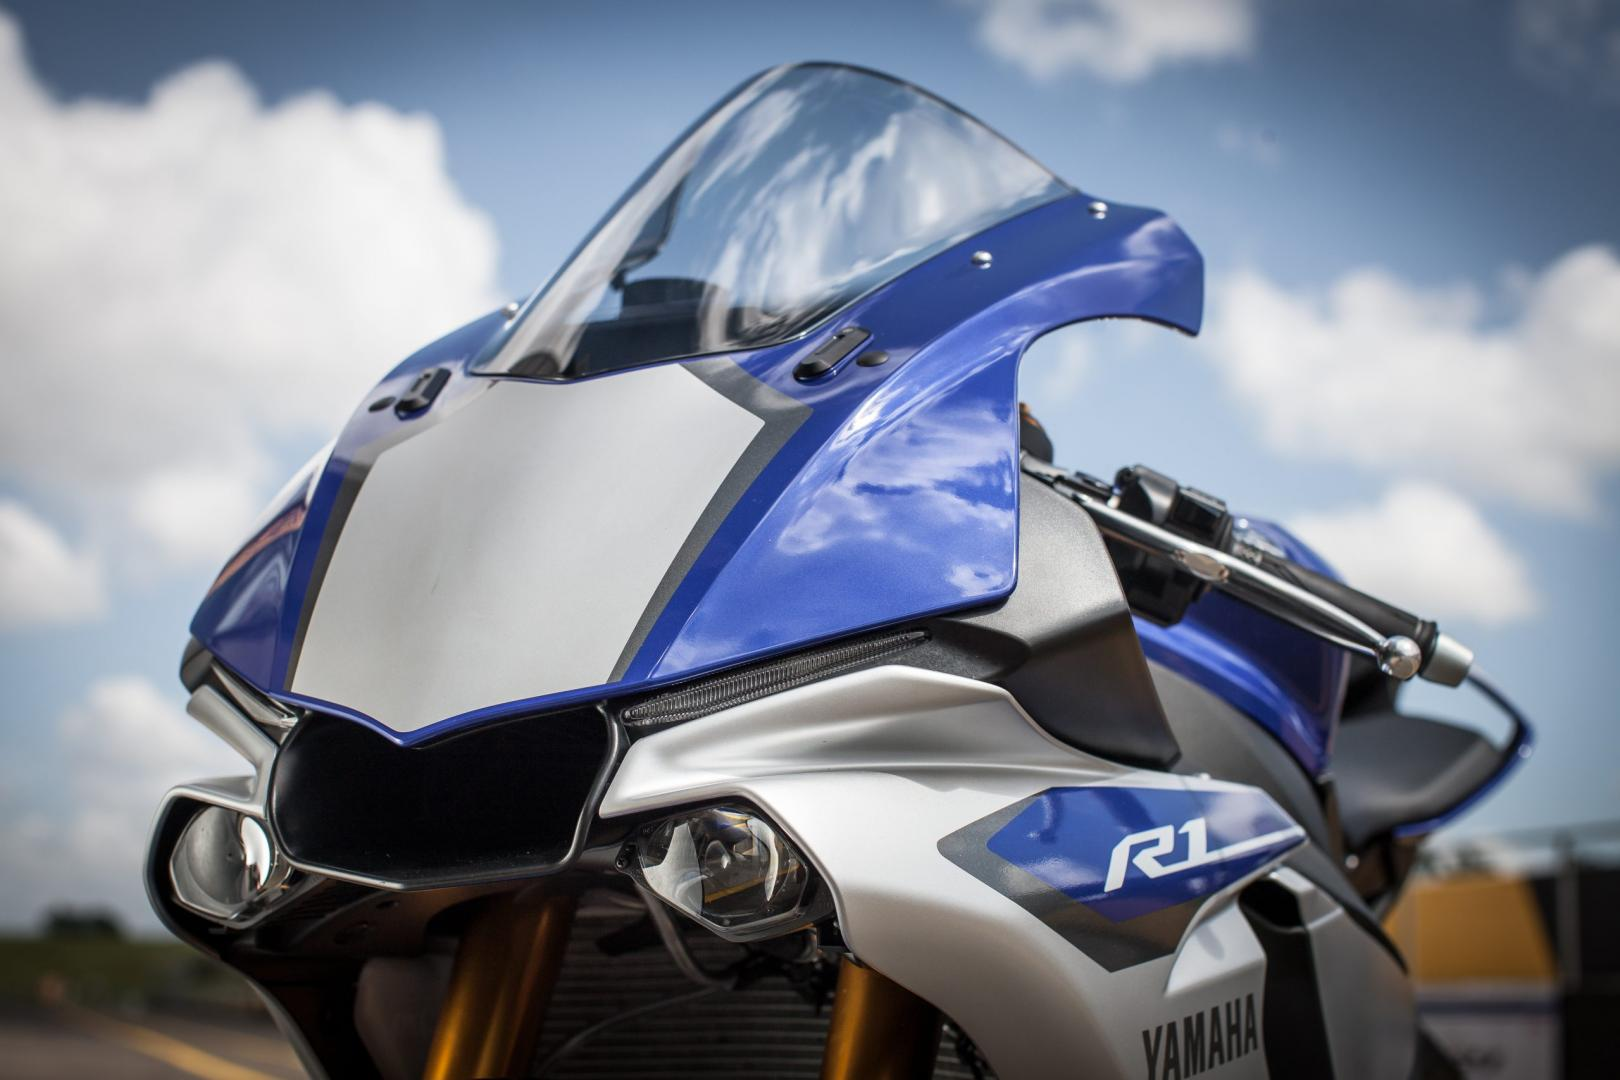 Yamaha YZF-R1 voorkant (2016)